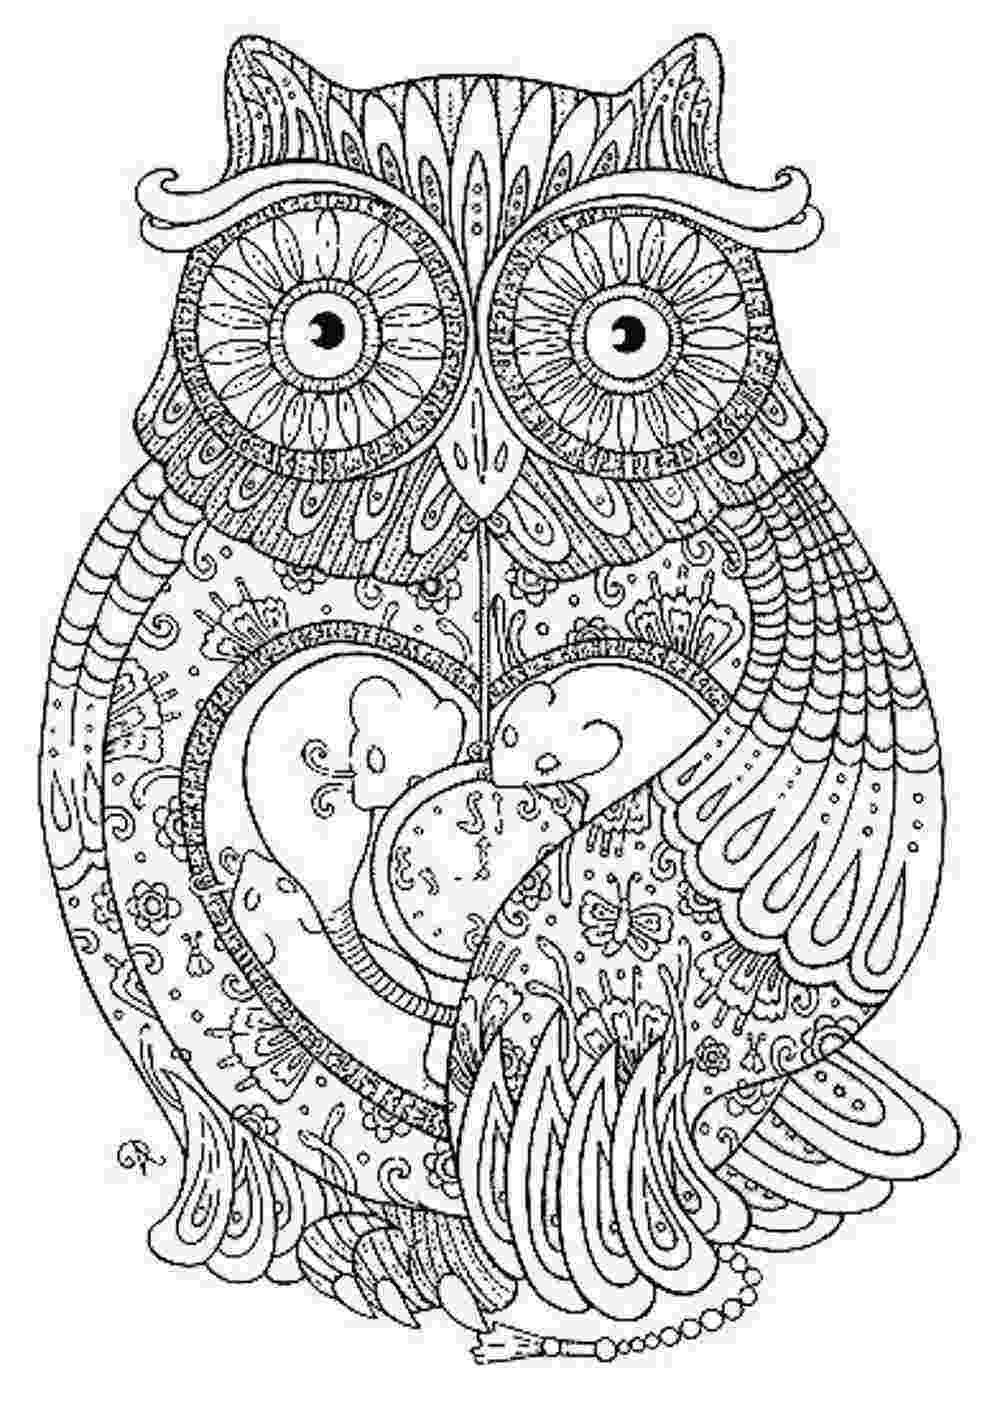 coloring pages of animals adult coloring pages animals best coloring pages for kids of pages coloring animals 1 1